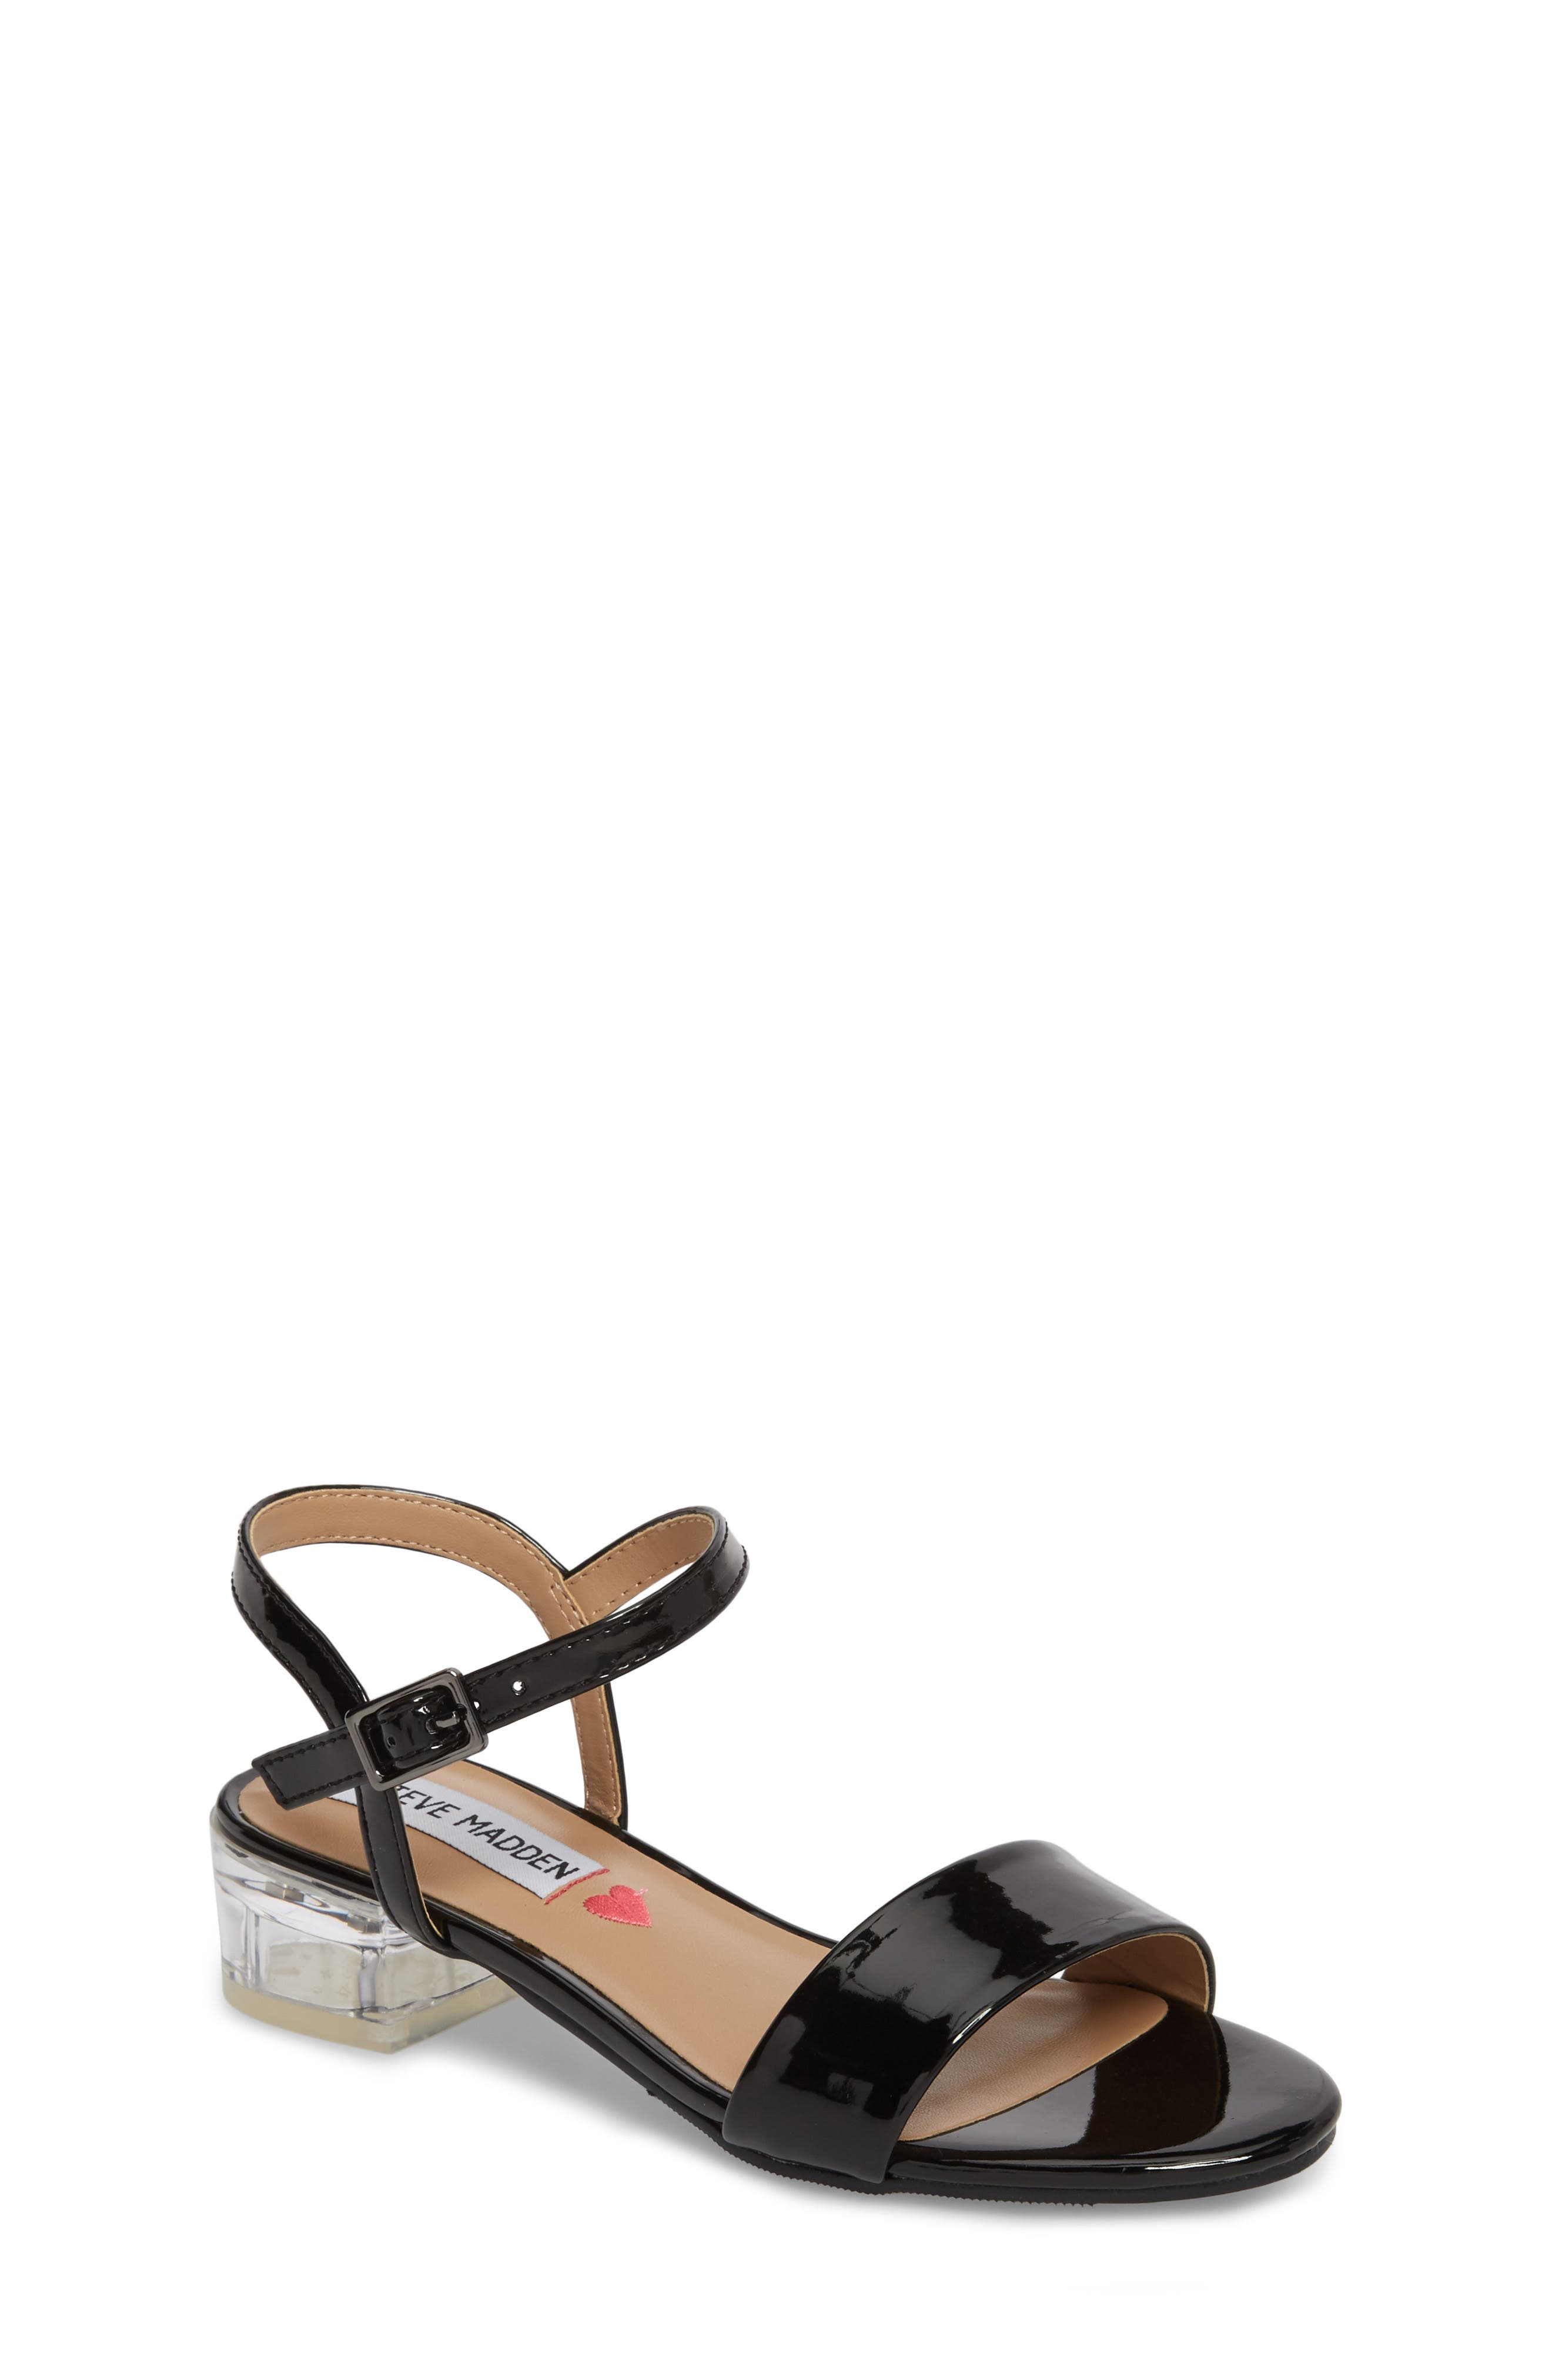 Steve Madden Jvallery Metallic Sandal (Little Kid & Big Kid)